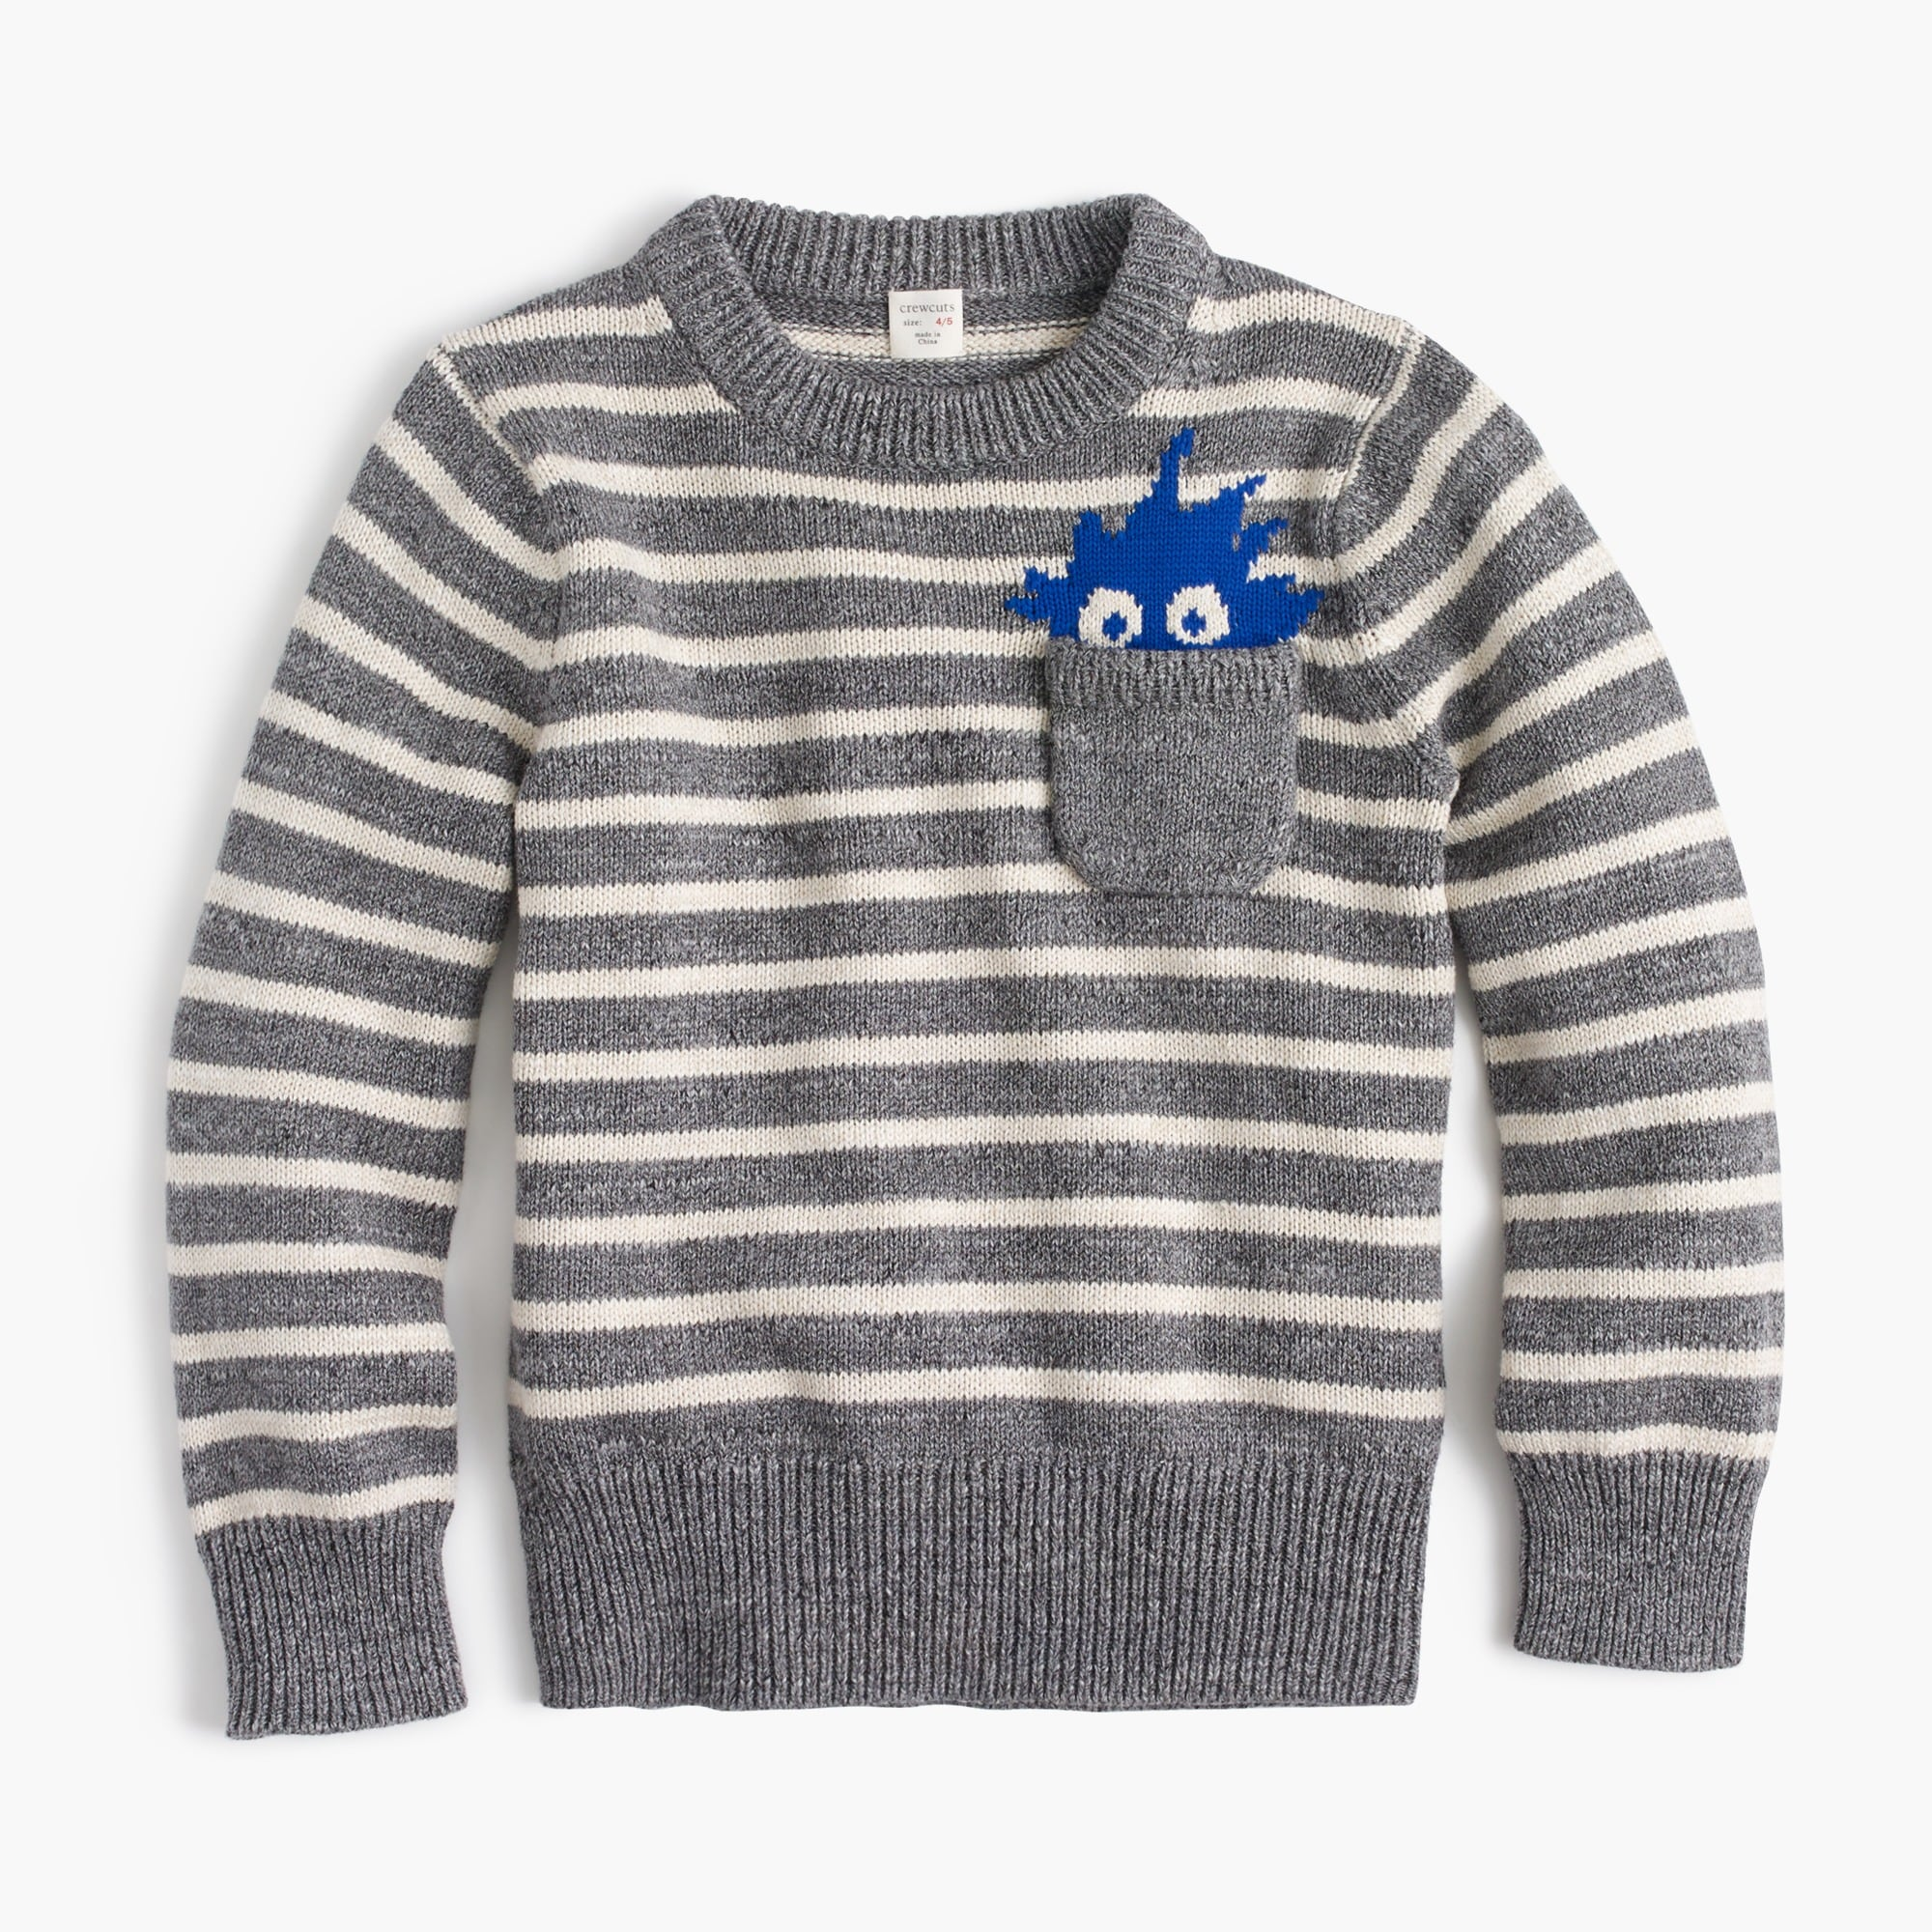 Boys' Max the Monster cotton crewneck sweater